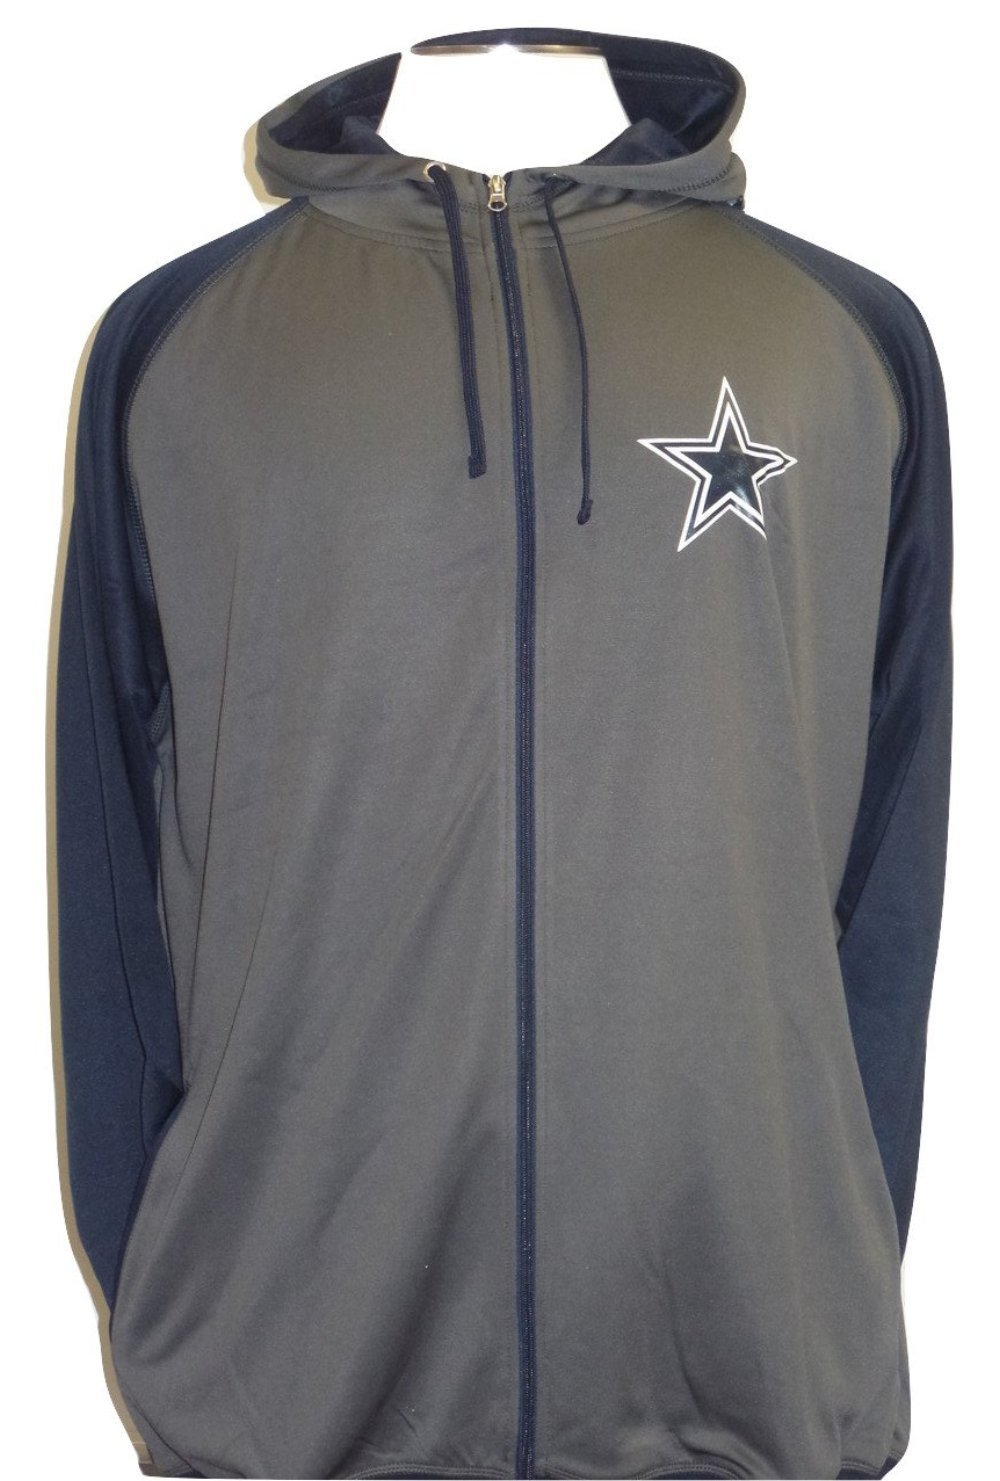 Dallas Cowboys Men's Big and Tall Raglan Full Zip Fleece Jacket by Dallas Cowboys Merchandise